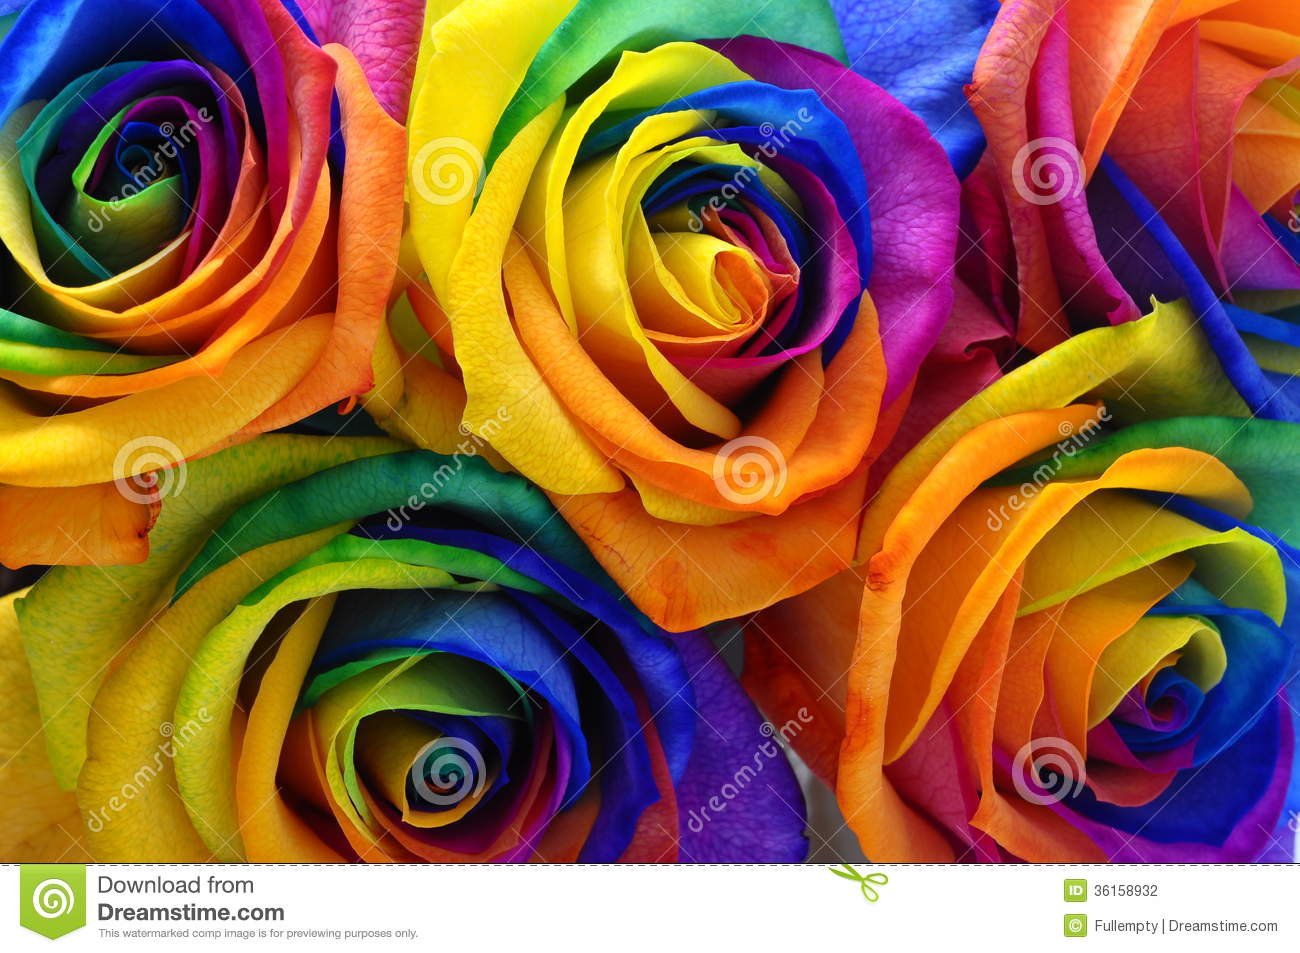 Rainbow rose or happy flower stock photography image for Rainbow petals